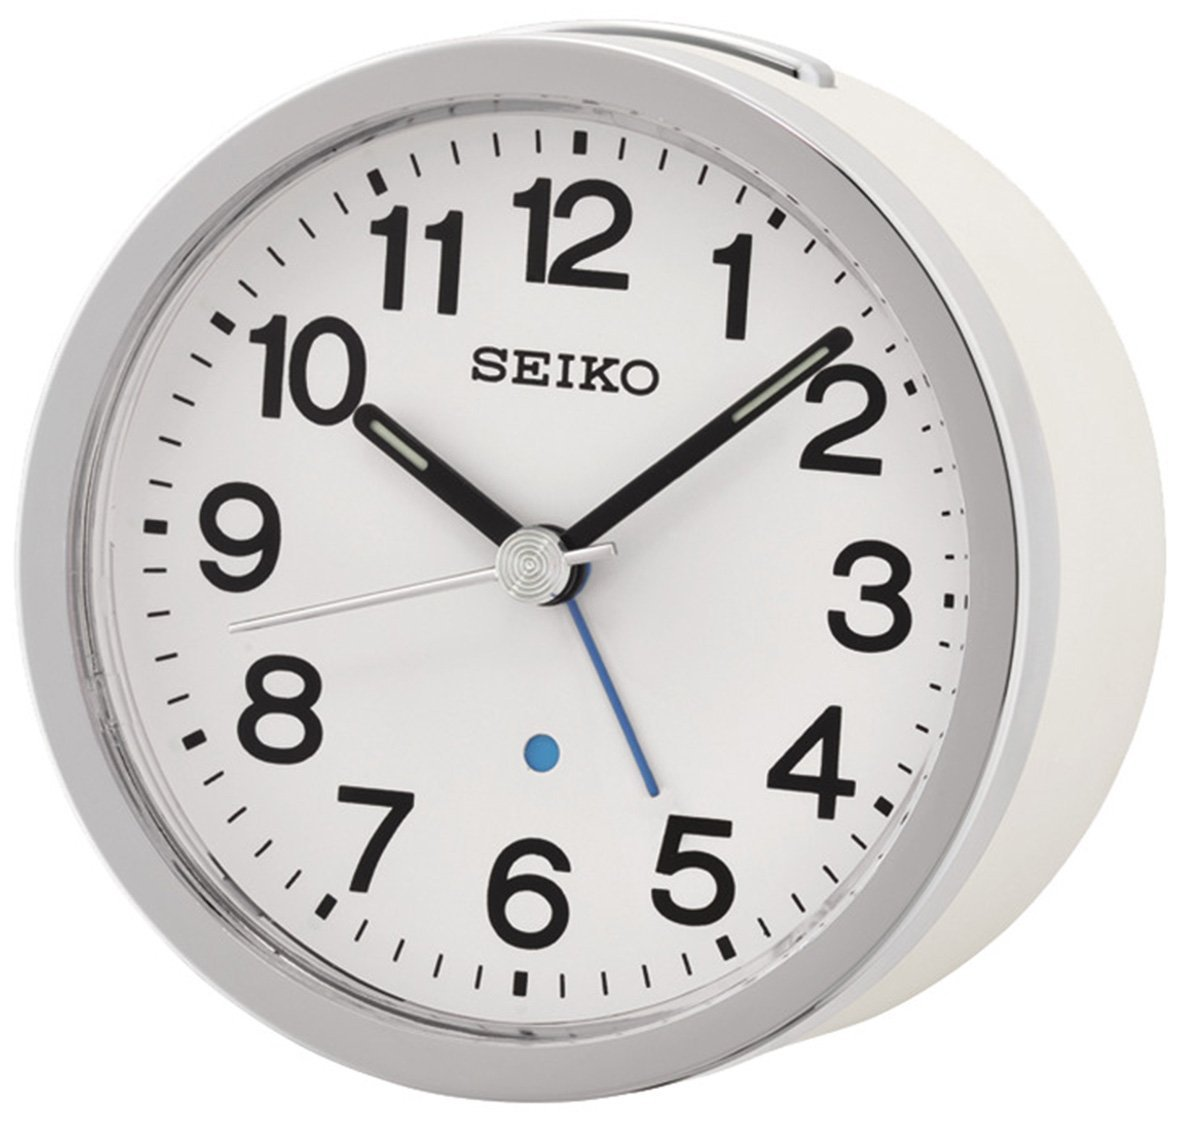 Cheap Musical Clocks Seiko Find Musical Clocks Seiko Deals On Line